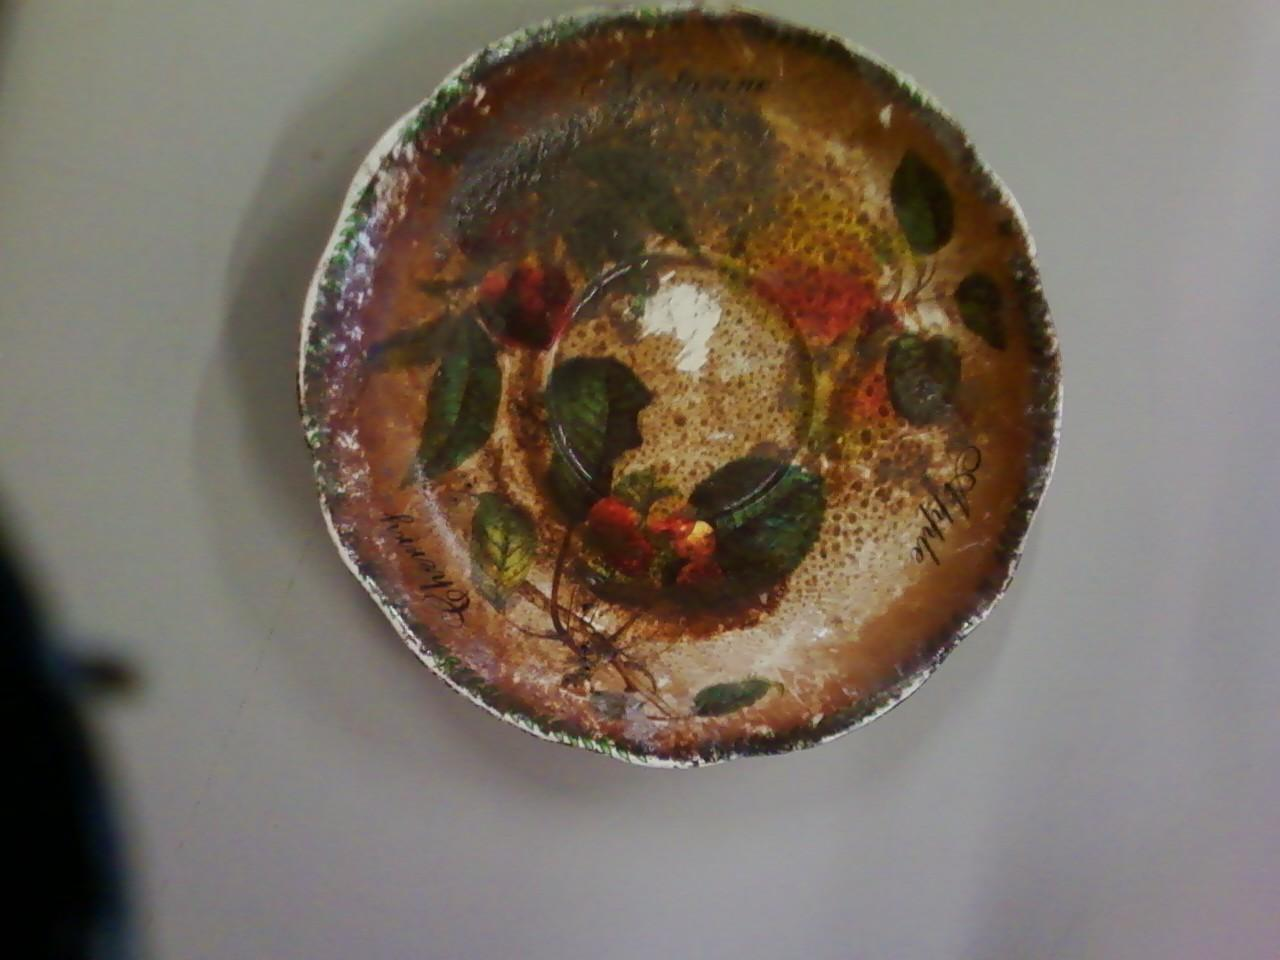 Painted bowl restored after sustaining fire damage - Before Photo